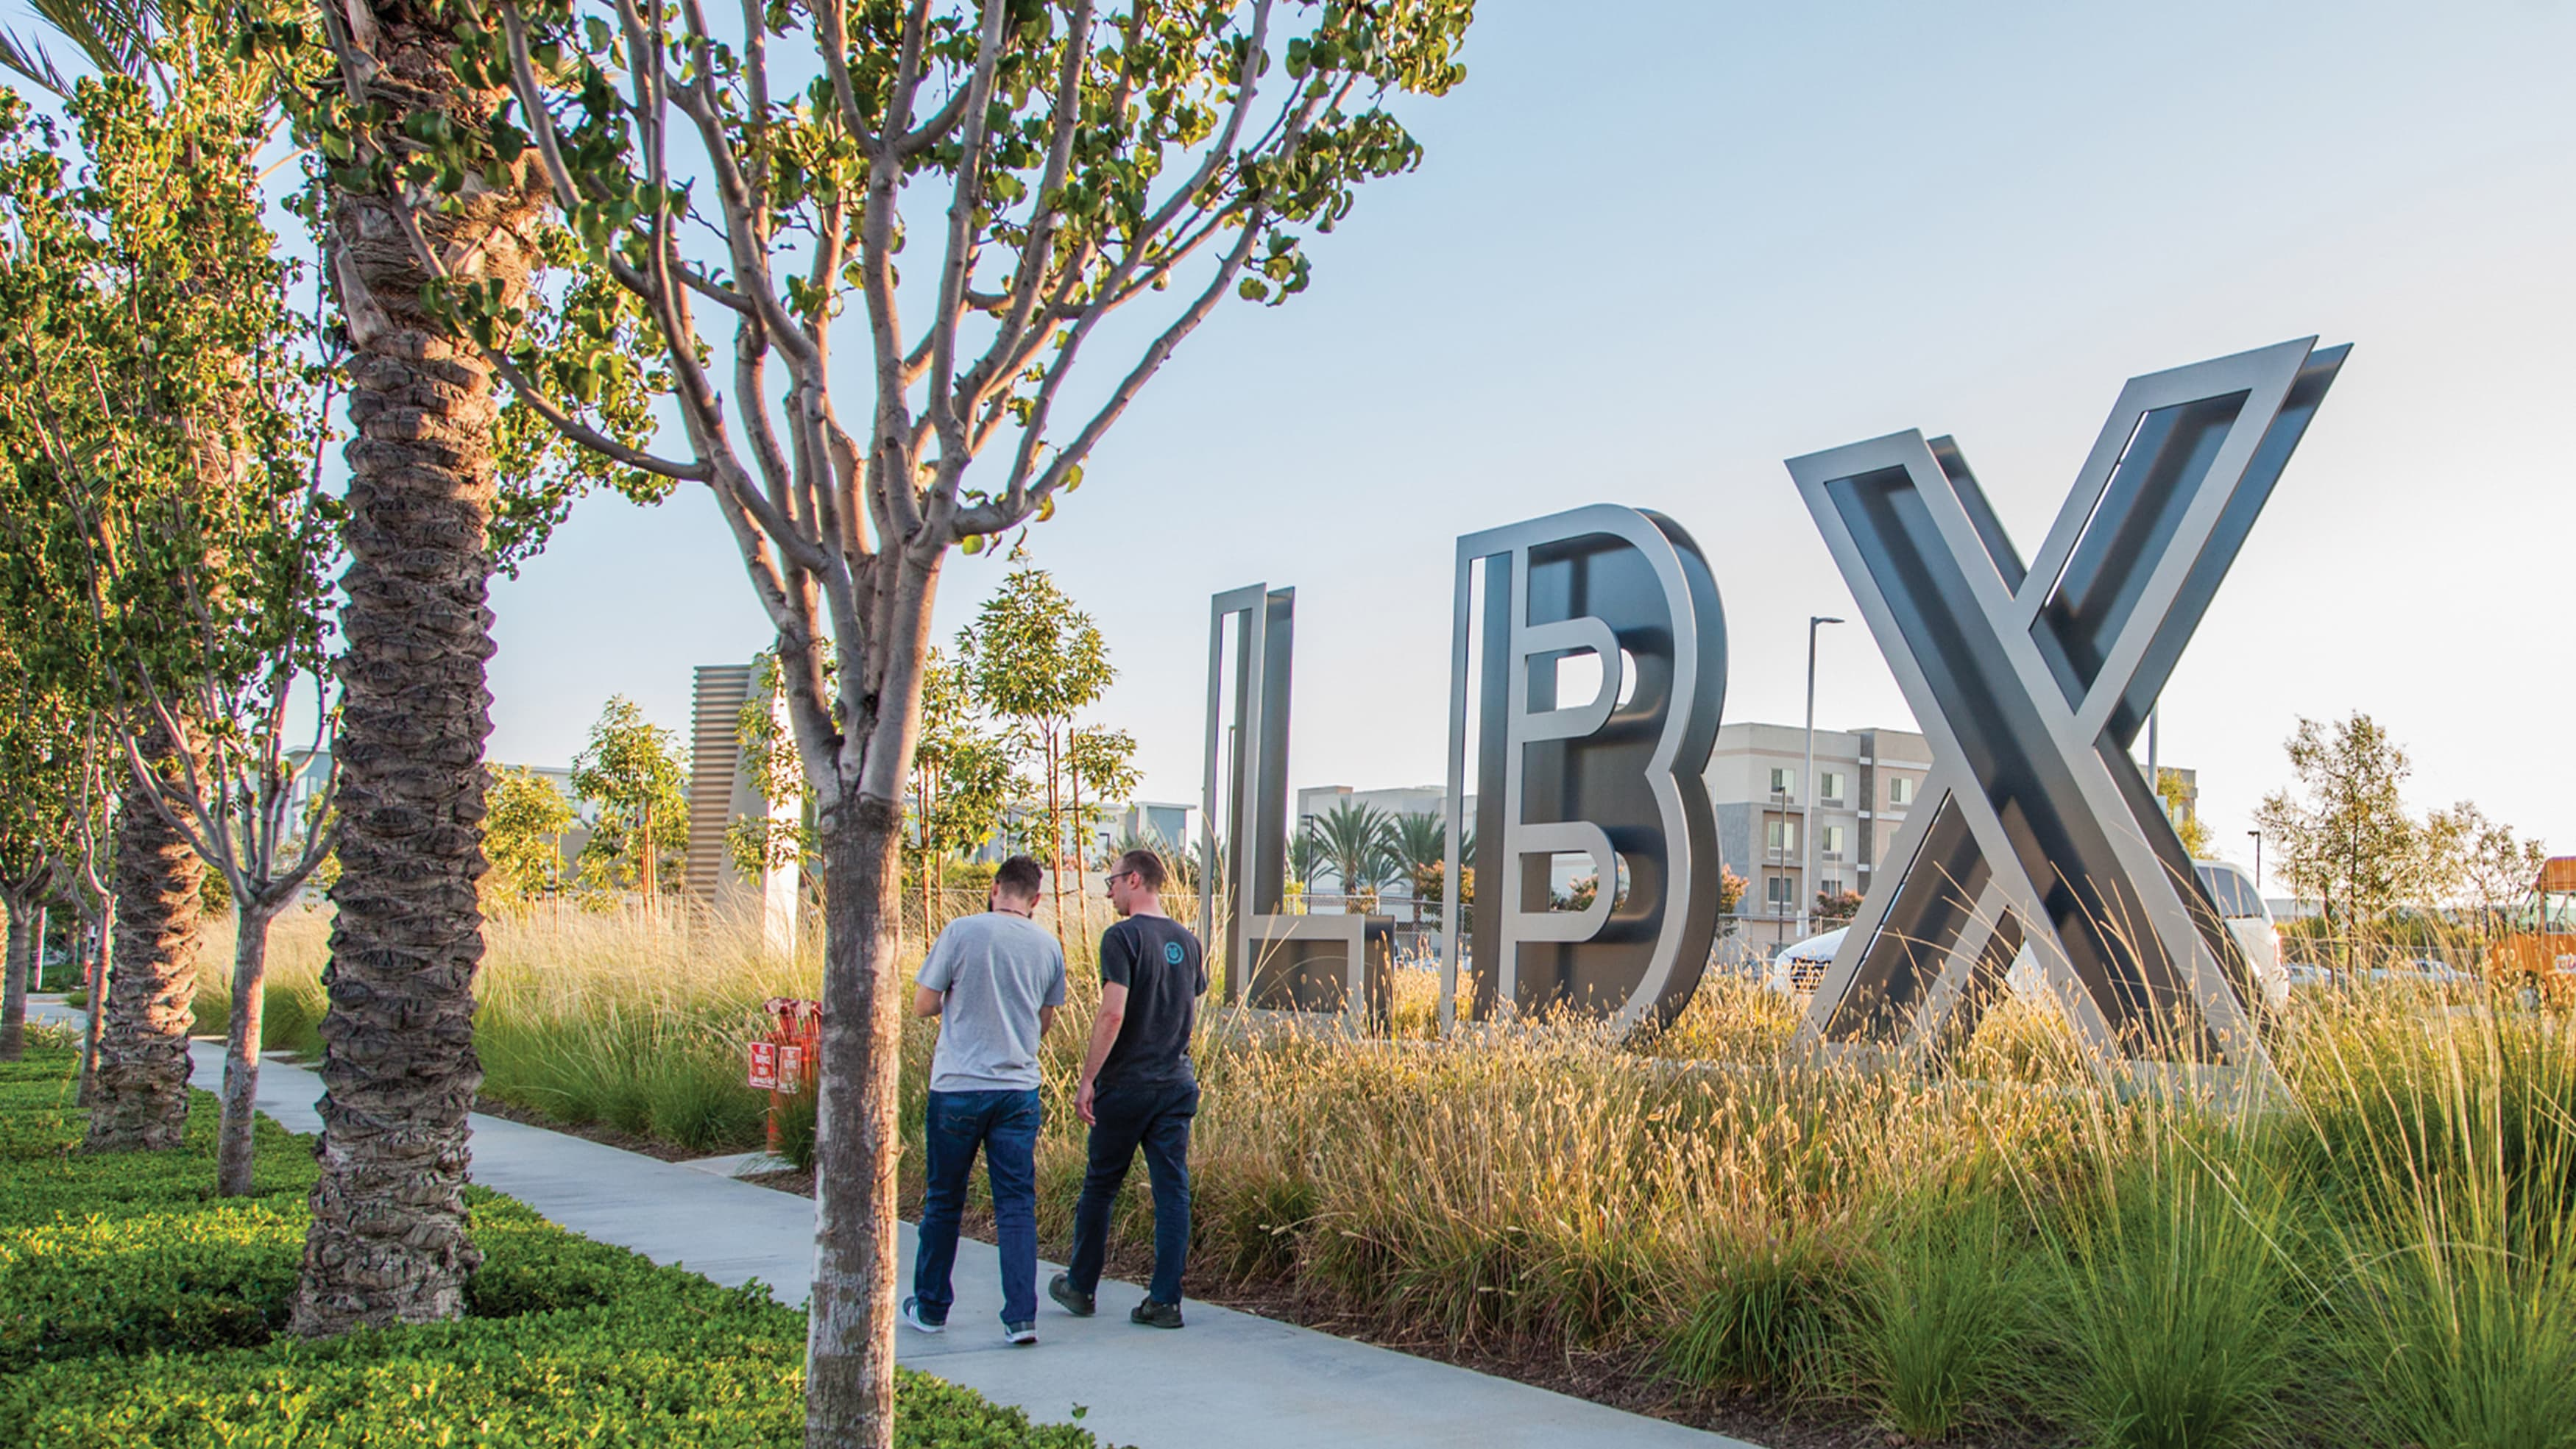 LBX large monument logo signage with people walking by